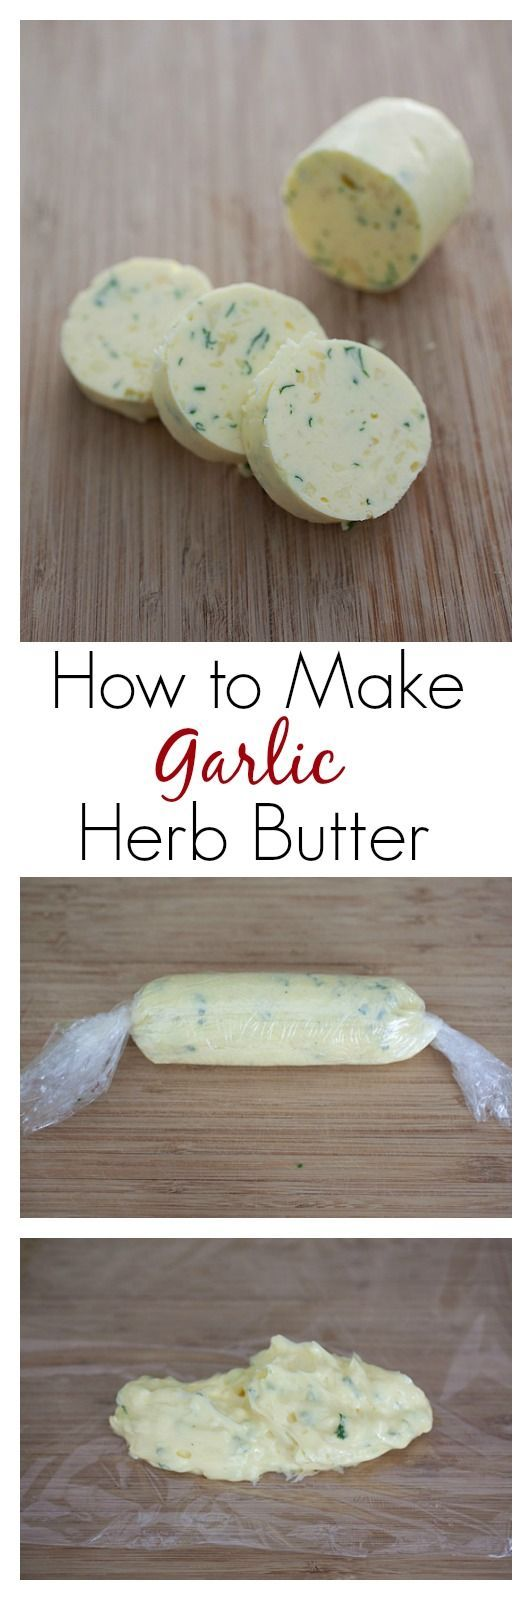 How to make Garlic Herb Butter. Learn the picture step-by-step, so easy to make and you can make so many dishes from it   rasamalaysia.com   #garlic #butter